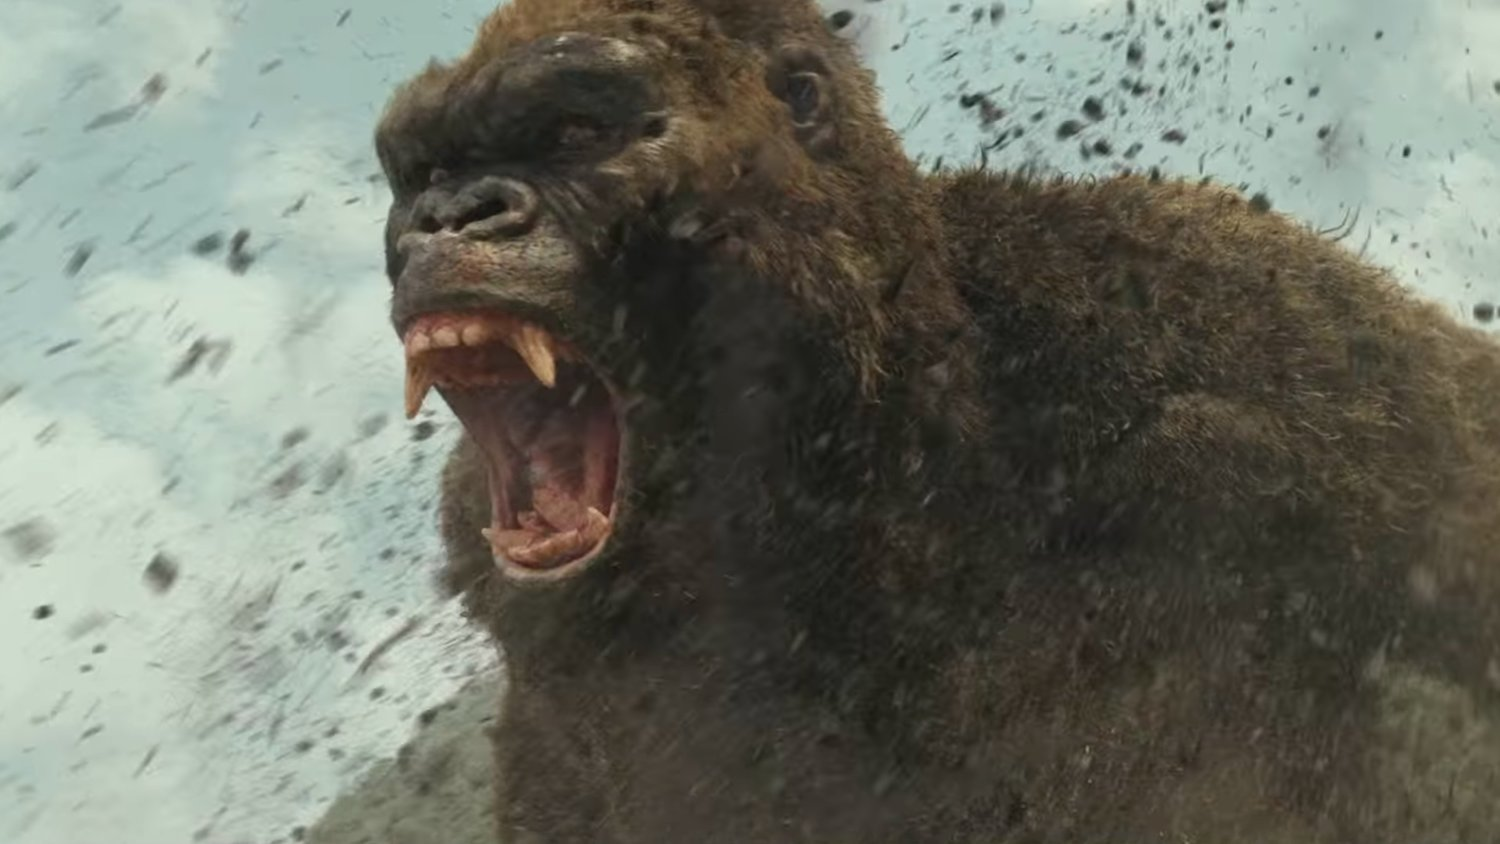 Epic Final Trailer and VR Experience for KONG: SKULL ISLAND -